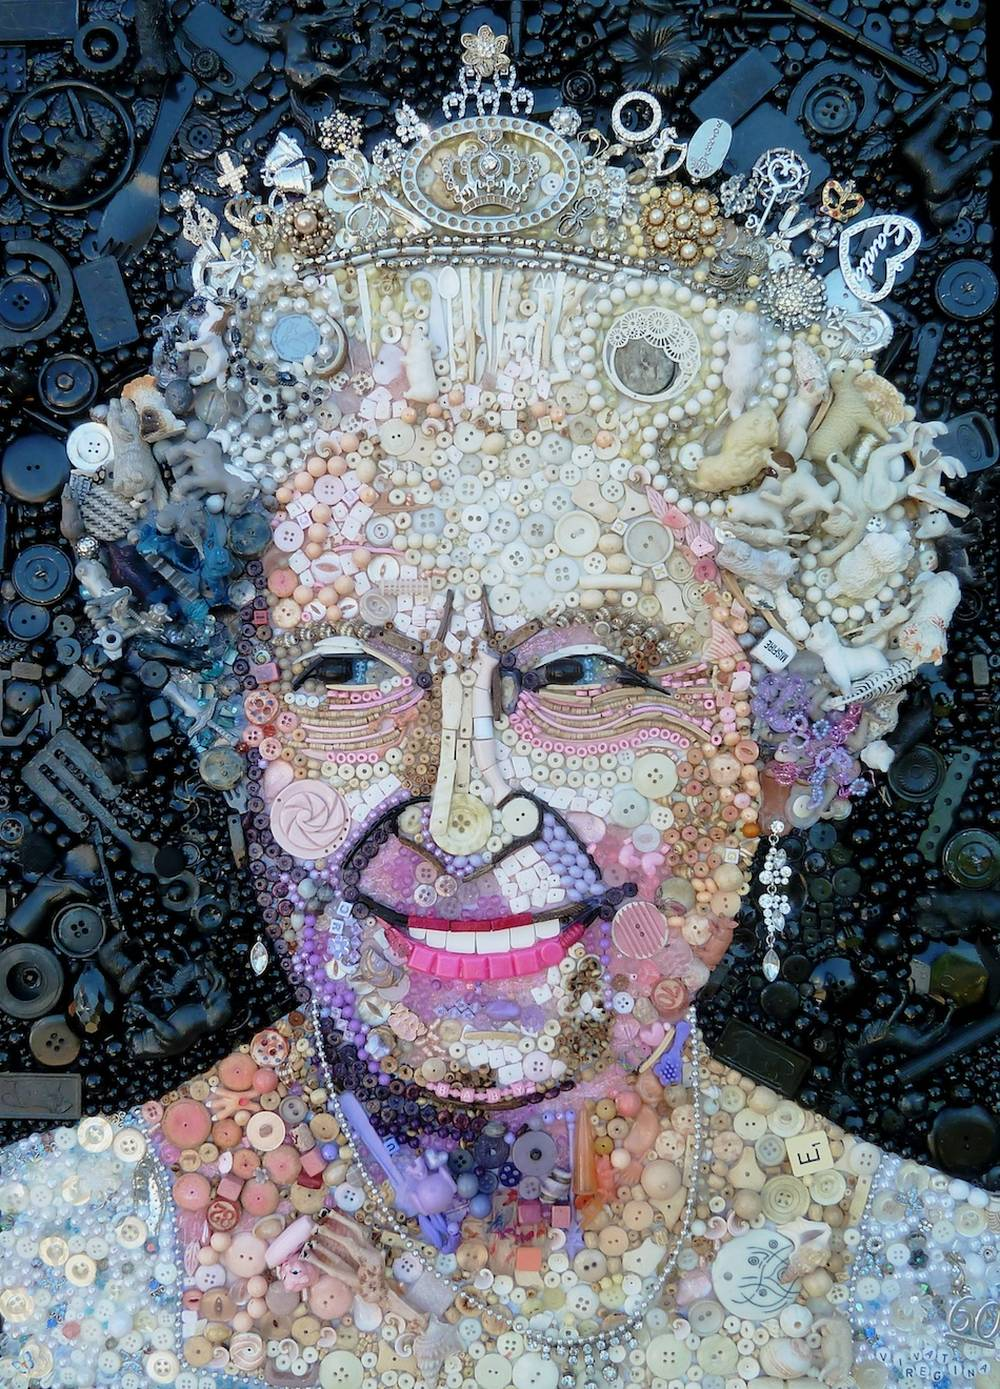 Jane Perkins Art Portrait - Queen Elizabeth